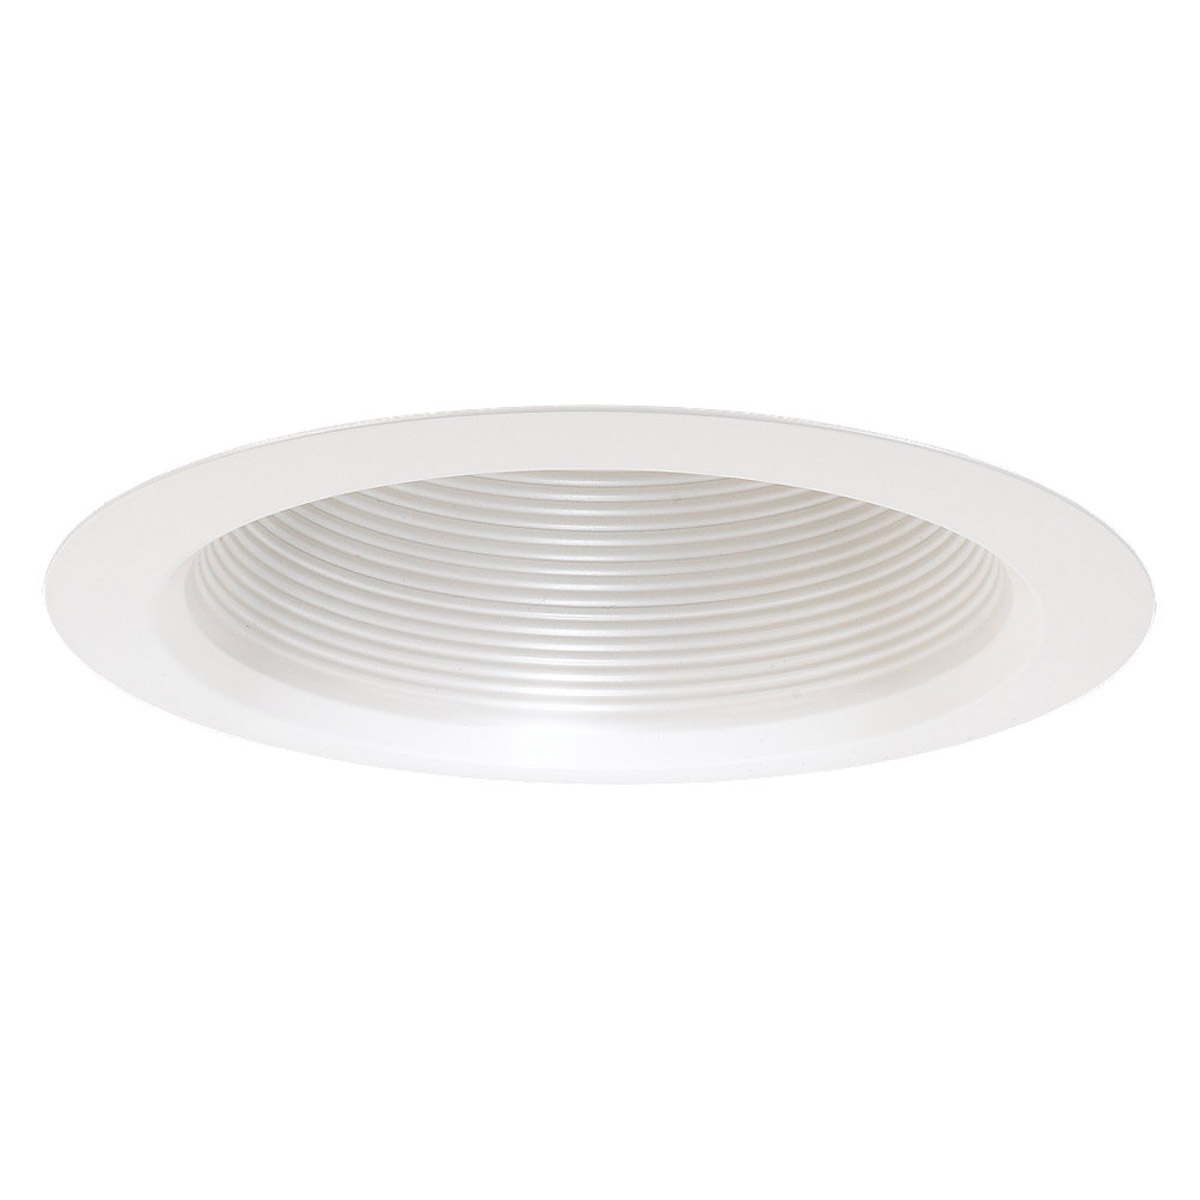 Sea Gull Lighting Signature Recessed Trim Only in White 1159AT-14